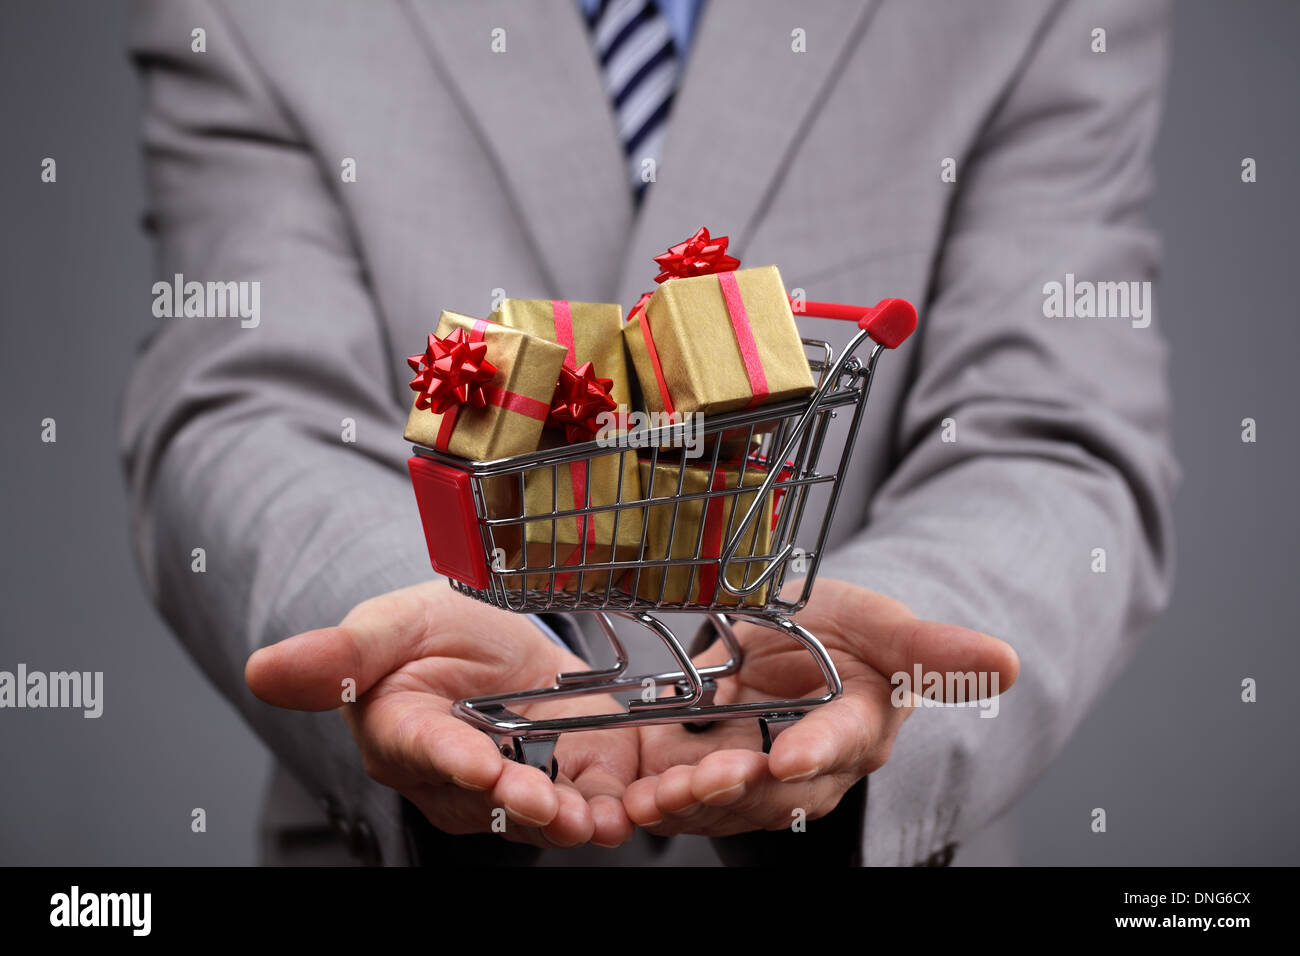 Shopping cart with gift box - Stock Image